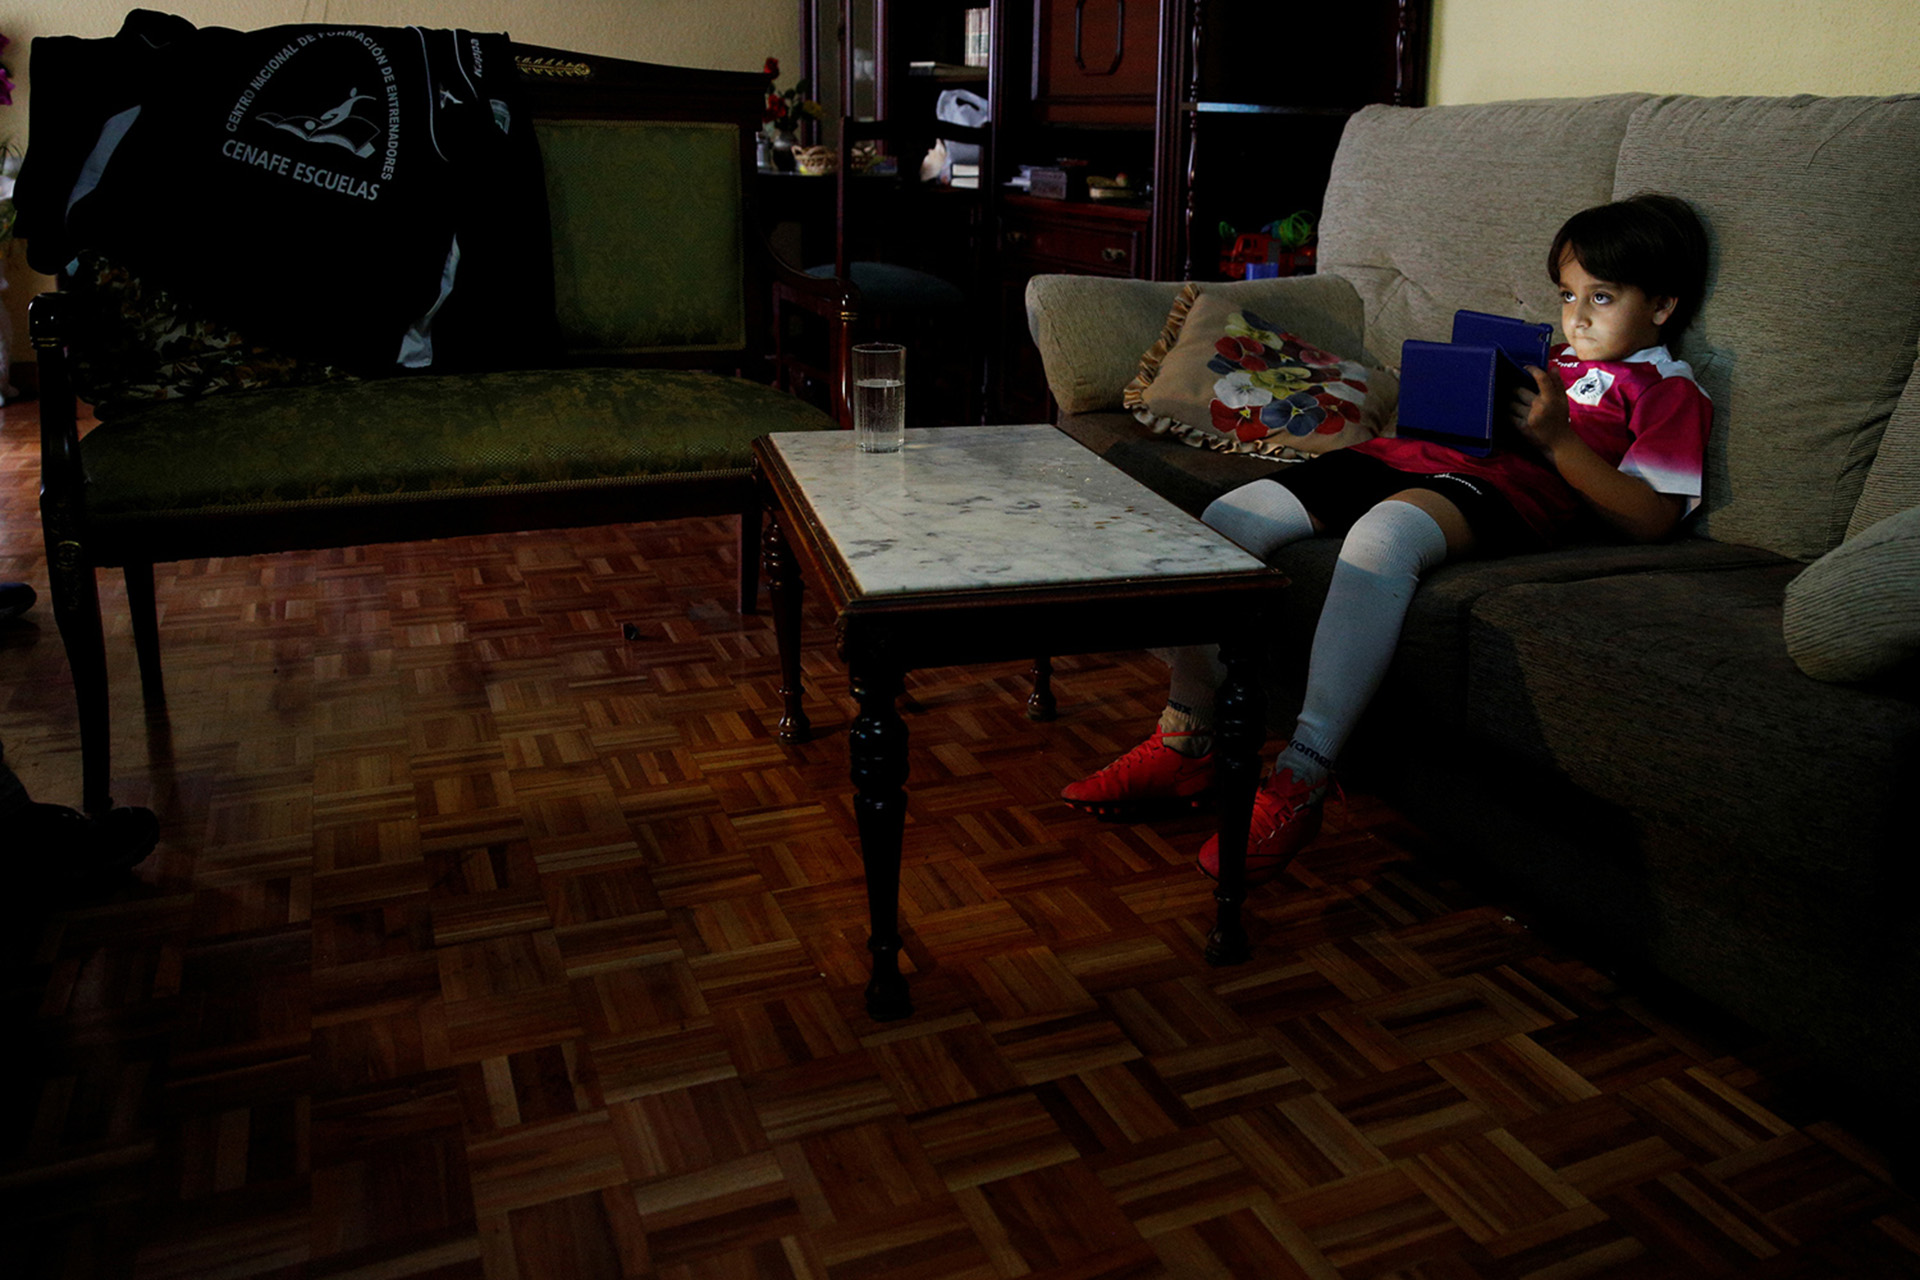 """ATTENTION EDITORS: SPANISH LAW REQUIRES THAT THE FACES OF MINORS ARE MASKED IN PUBLICATIONS WITHIN SPAIN - Zaid, the young son of Osama Abdul Mohsen, sits on a sofa at their home in Getafe, outside Madrid, Spain, April 14, 2016. Mohsen's story went viral after he was filmed being tripped up by a camerawoman as he fled police near the Hungarian border with Serbia last September. He was carrying his youngest son Zaid in his arms at the time, and the two fell sprawling on the ground. Footage of the incident helped bring him to the attention of a soccer training school in Getafe on the outskirts of Madrid, which found him work as a liaison officer. REUTERS/Sergio Perez     SEARCH """"REFUGEE PEREZ"""" FOR THIS STORY. SEARCH """"THE WIDER IMAGE"""" FOR ALL STORIES - RTX2CXCI"""